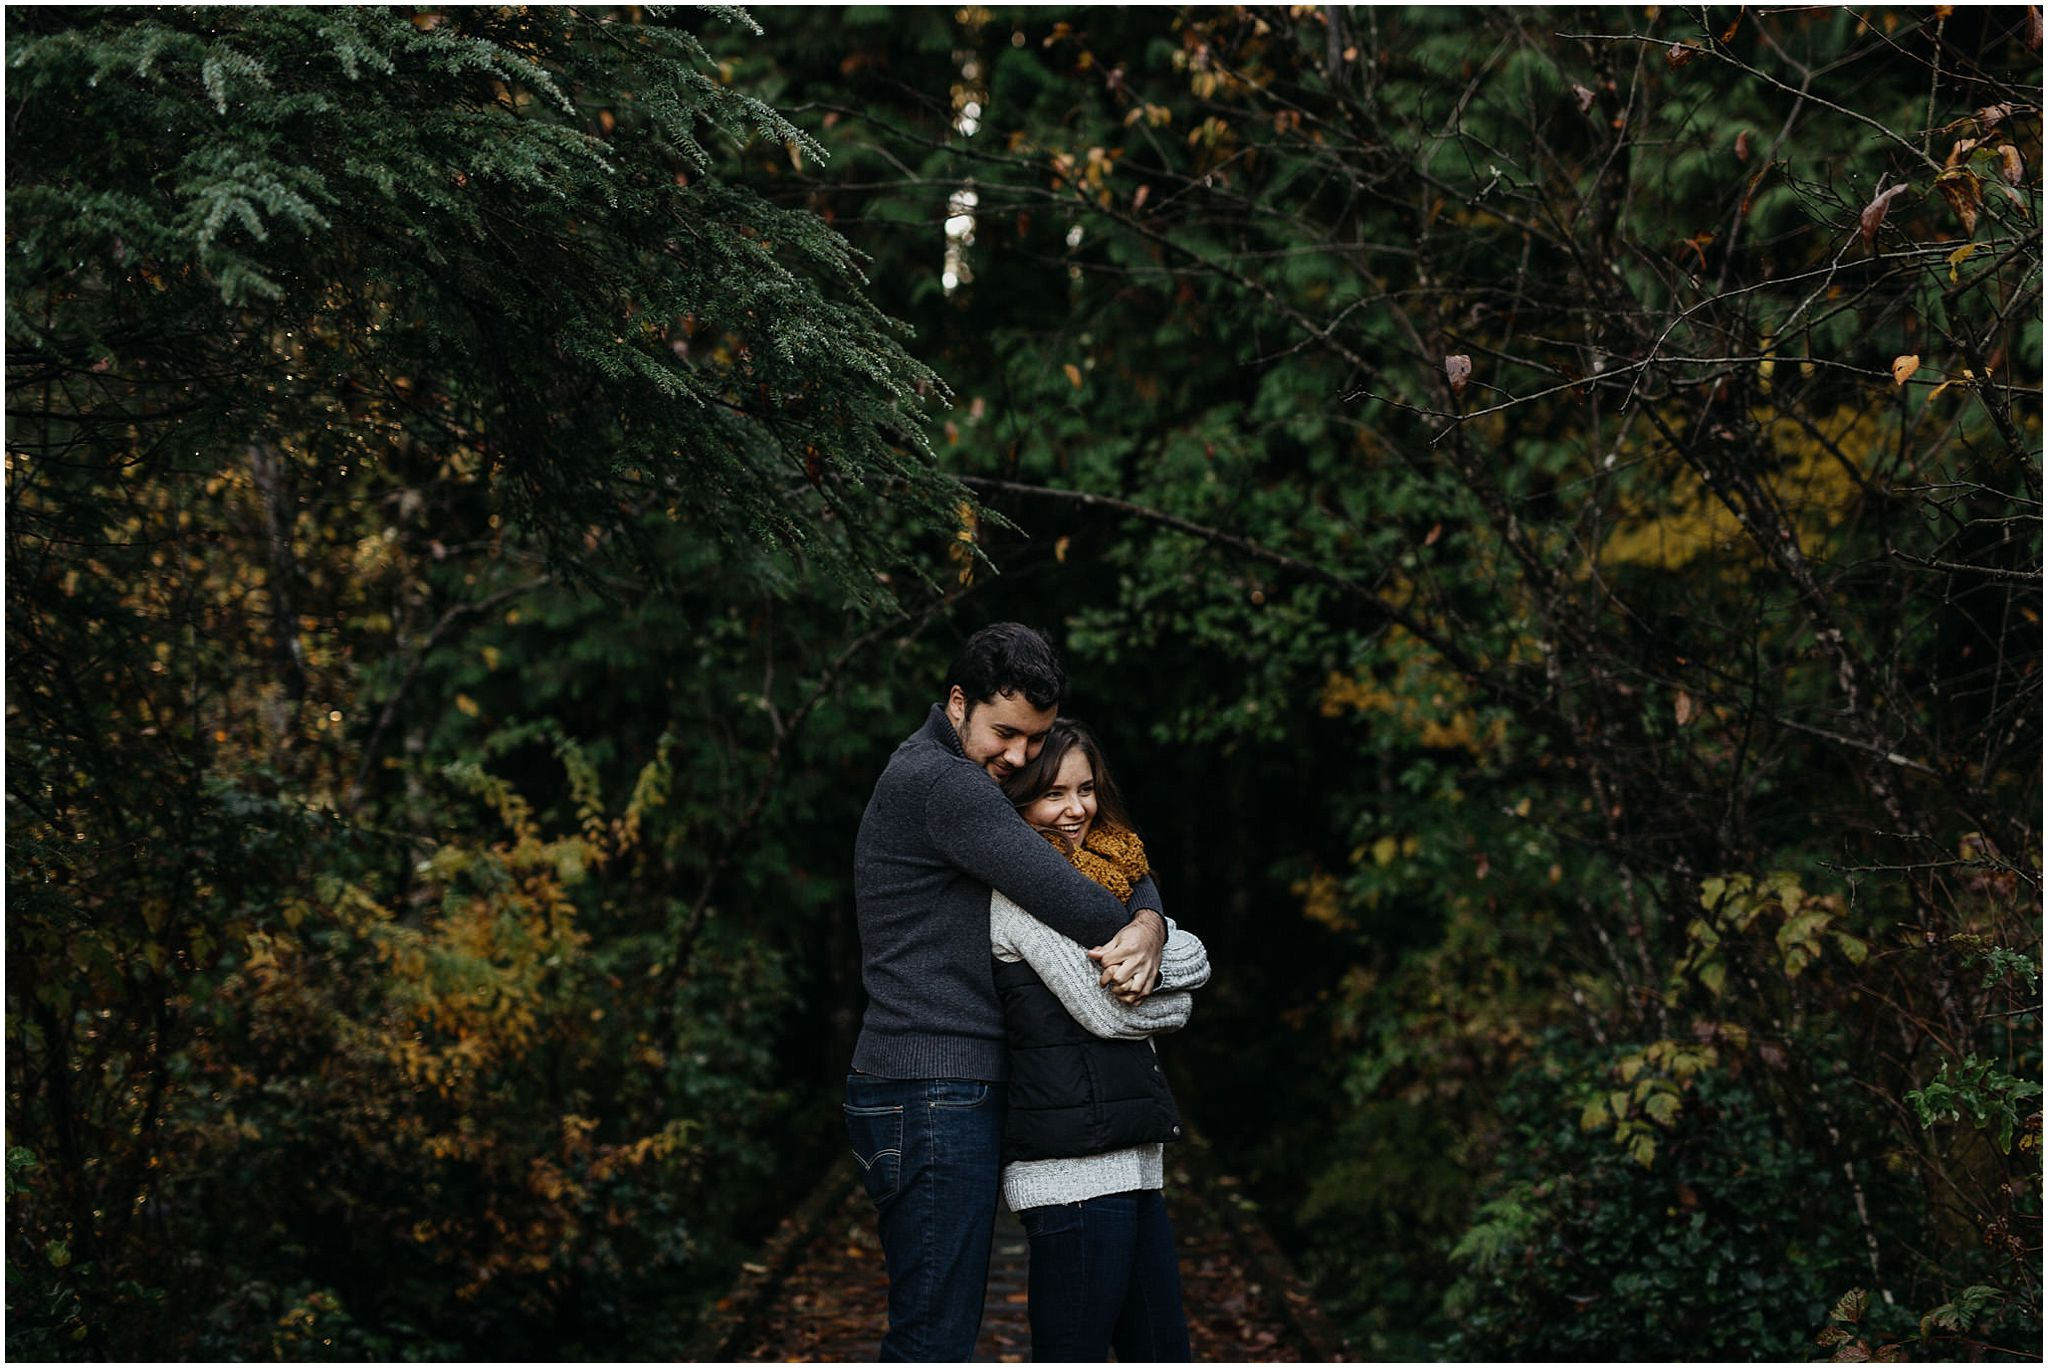 aileen-choi-photo-rolley-lake-mission-engagement-session_0037.jpg